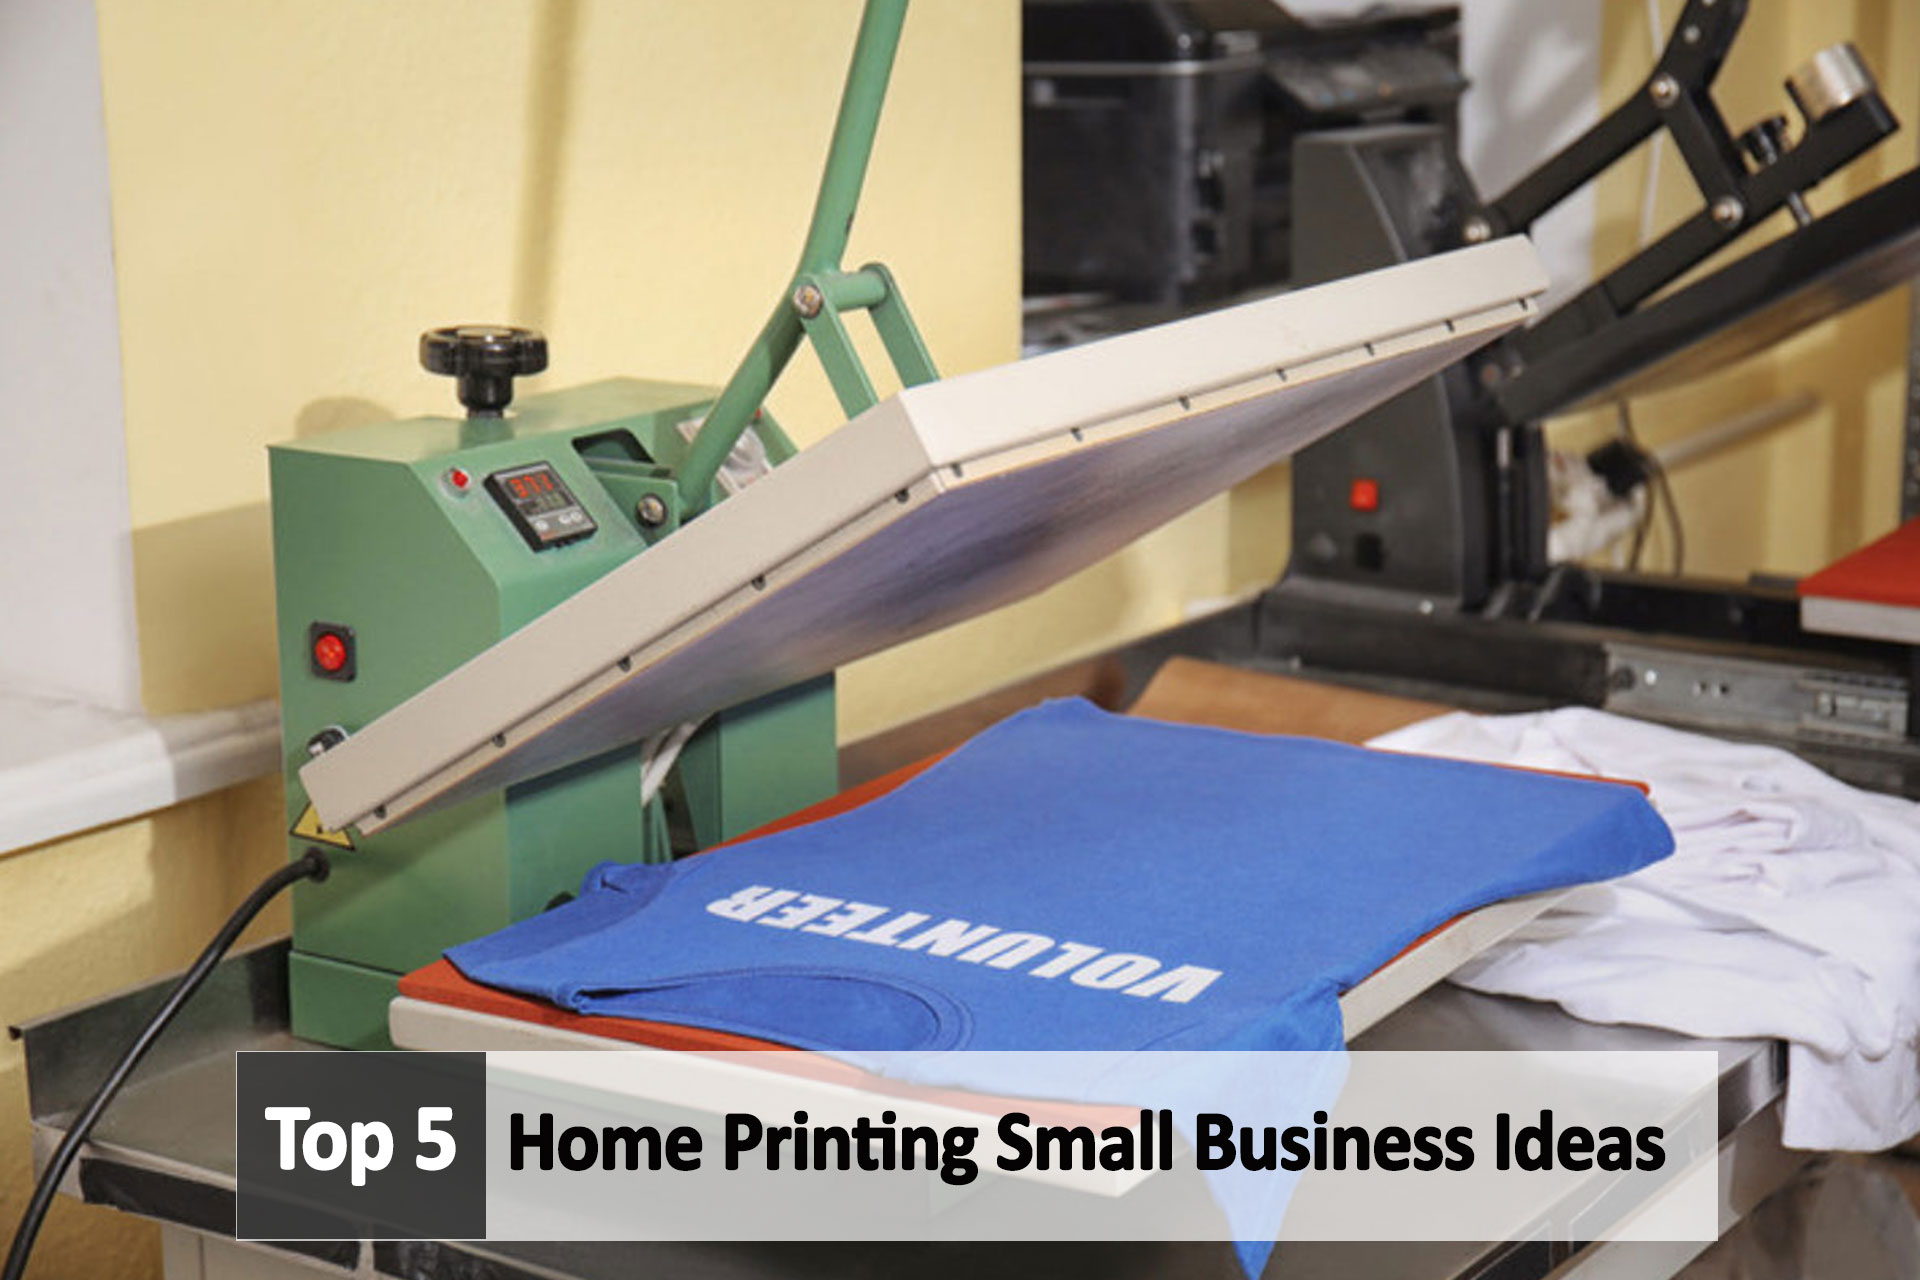 Top 5 Home Printing Small Business Ideas